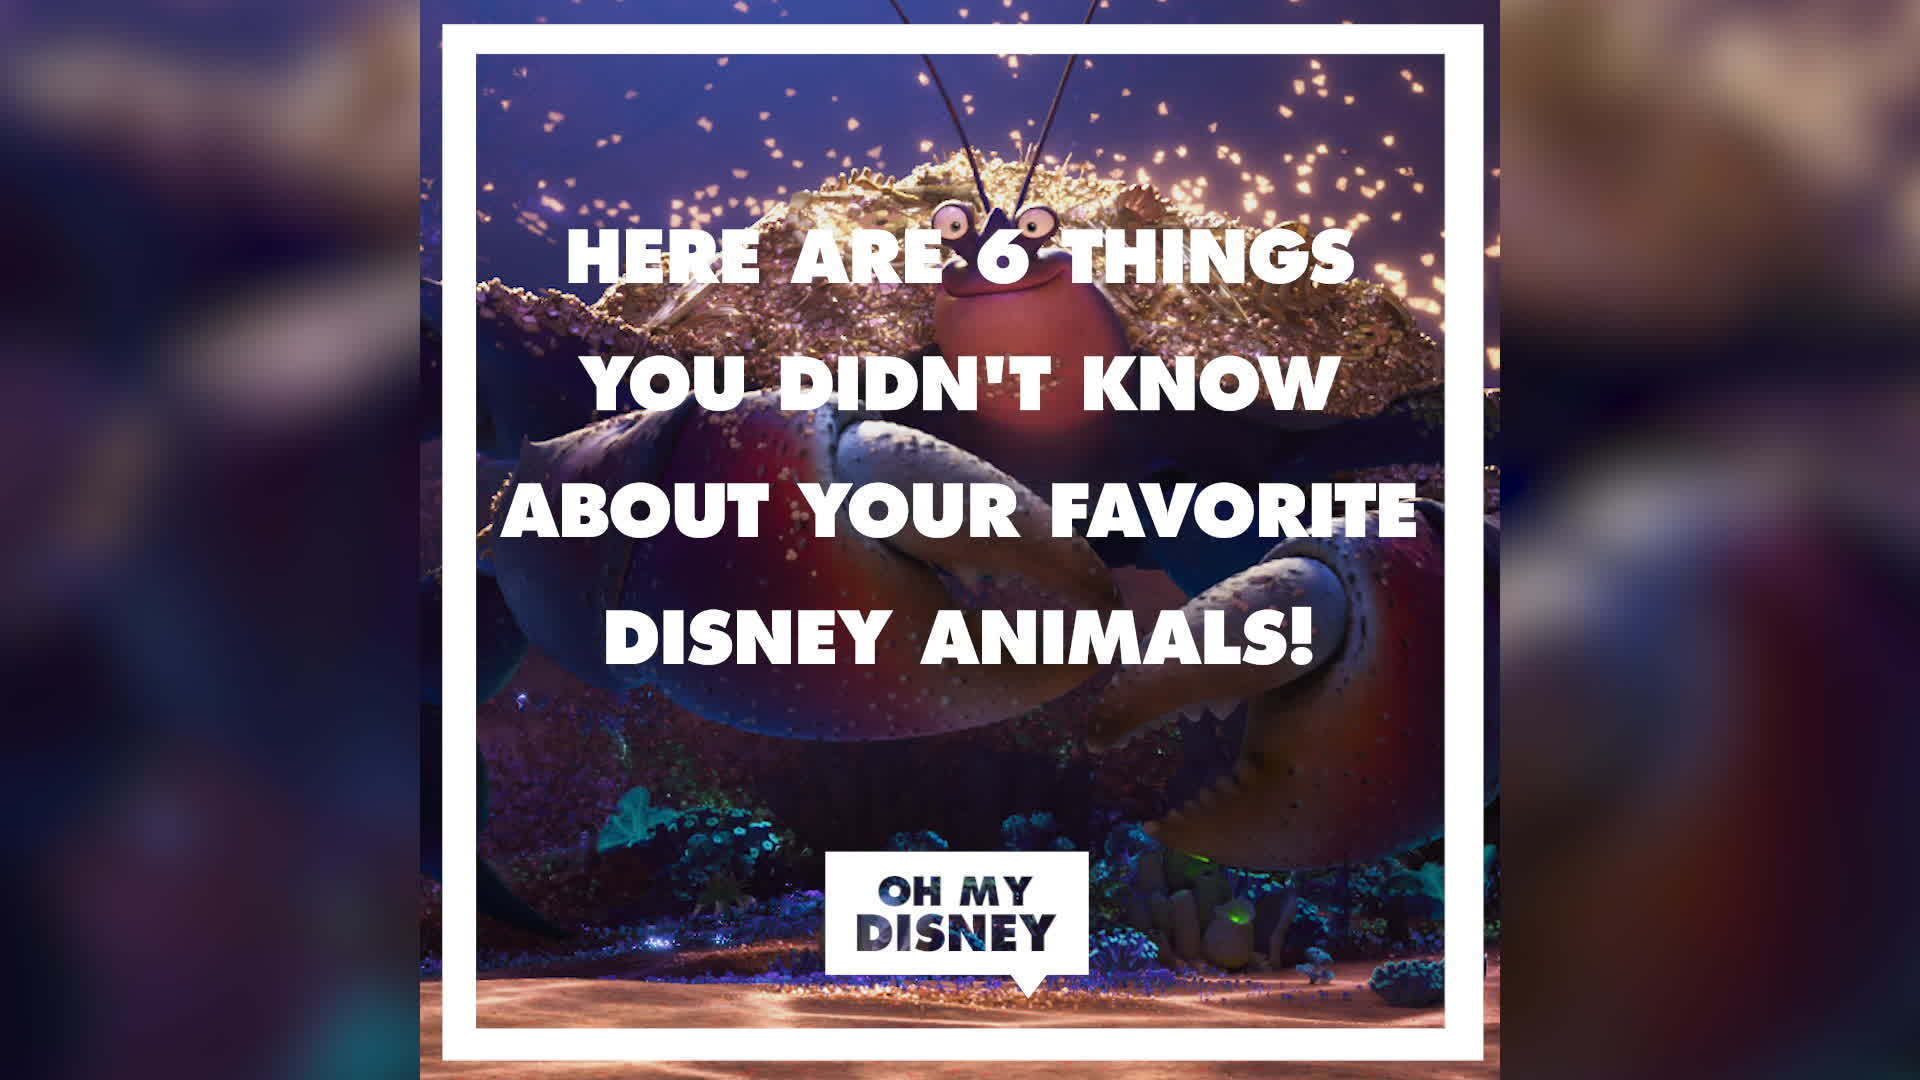 7 Things You Didn't Know About Your Favorite Disney Animals | Oh My Disney